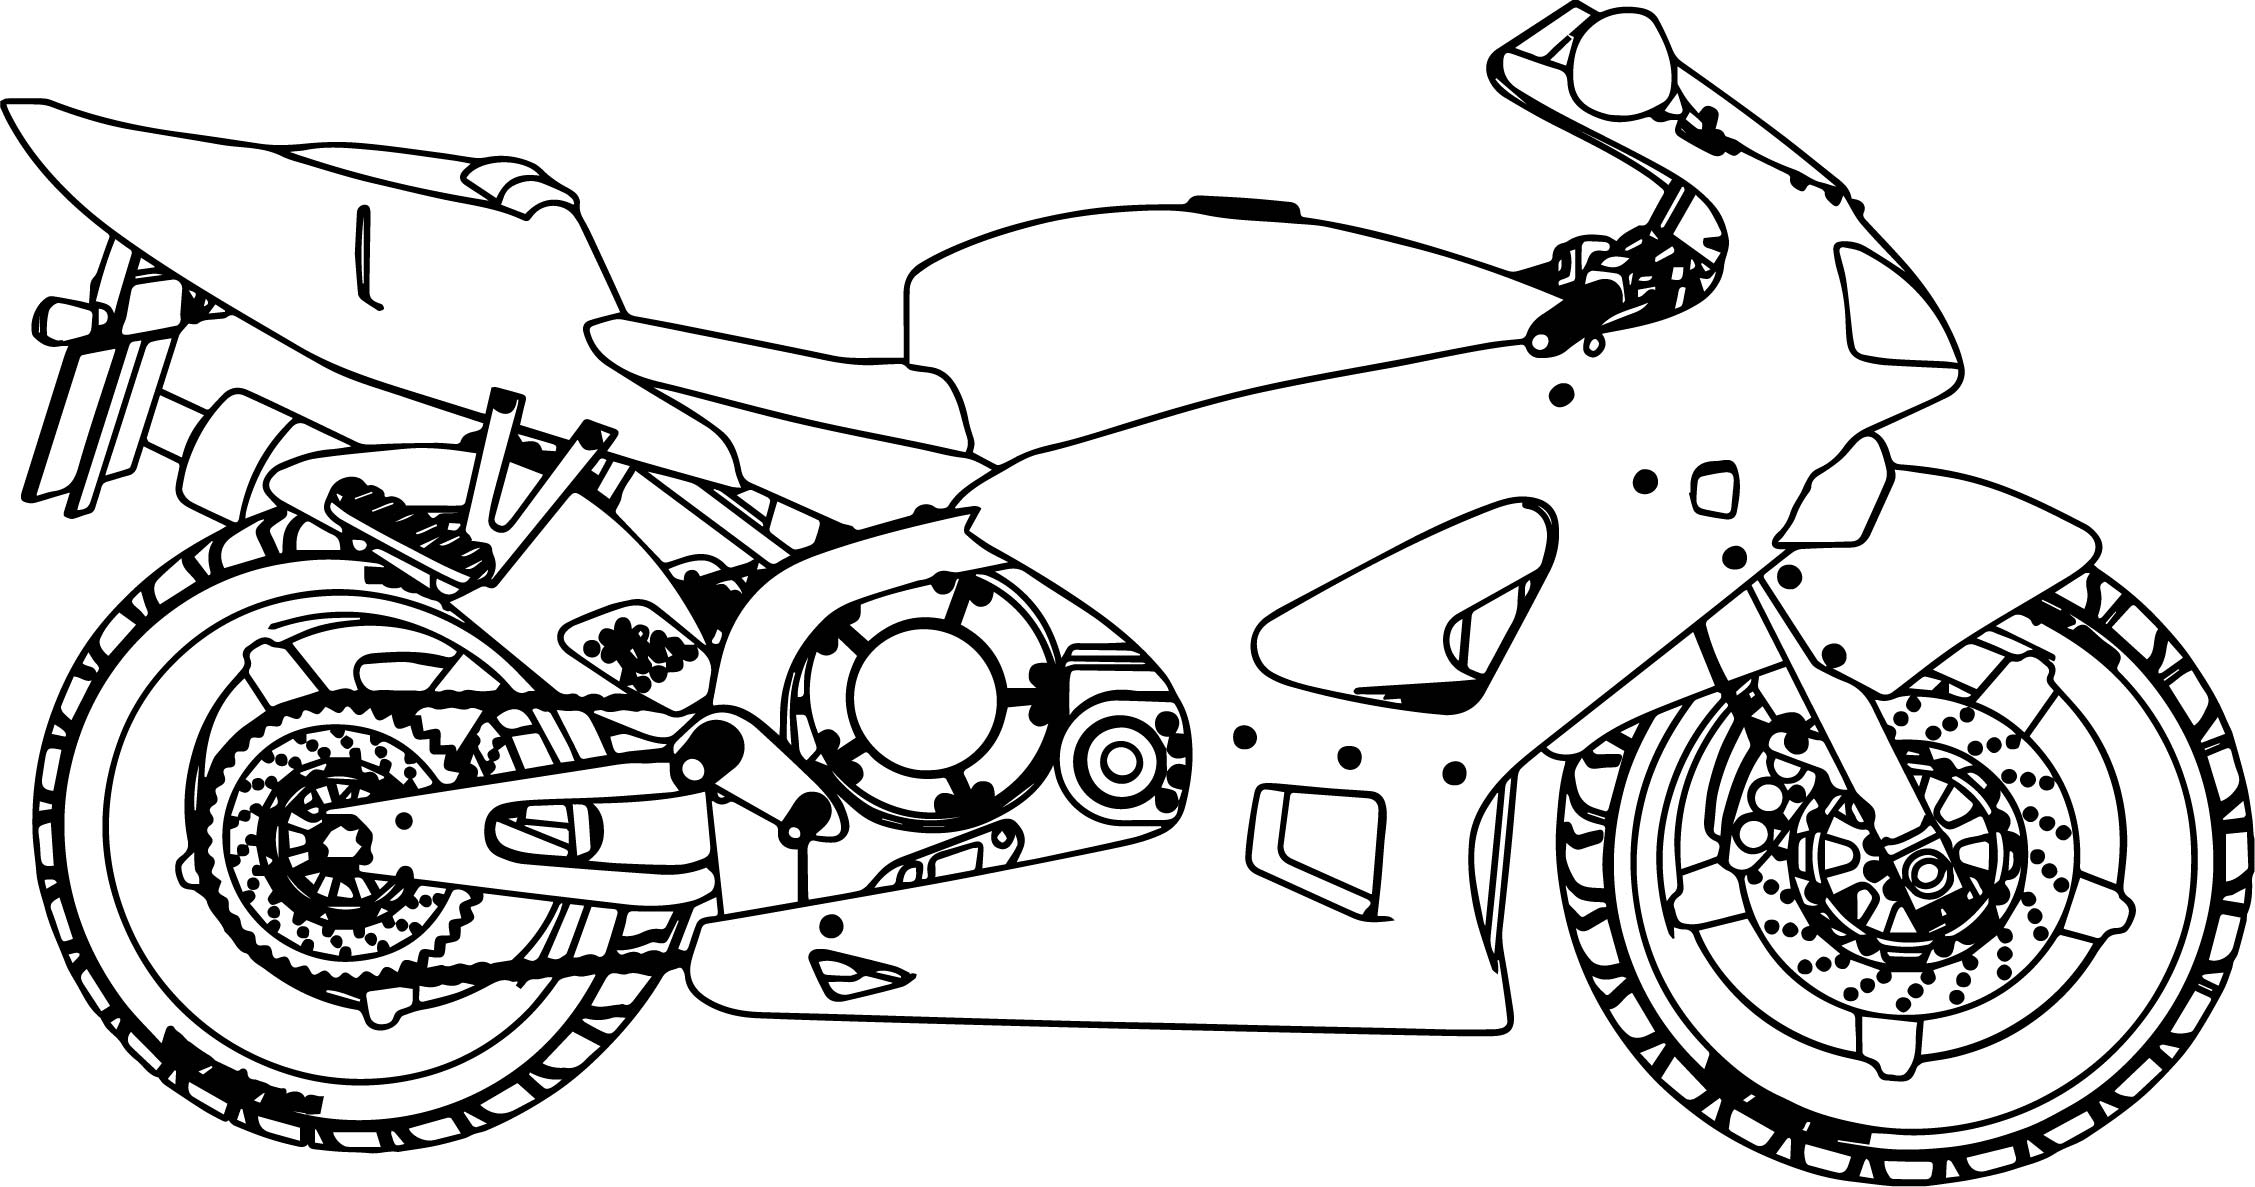 bold line coloring pages | Honda Motorcycle Bold Line Coloring Page | Wecoloringpage.com